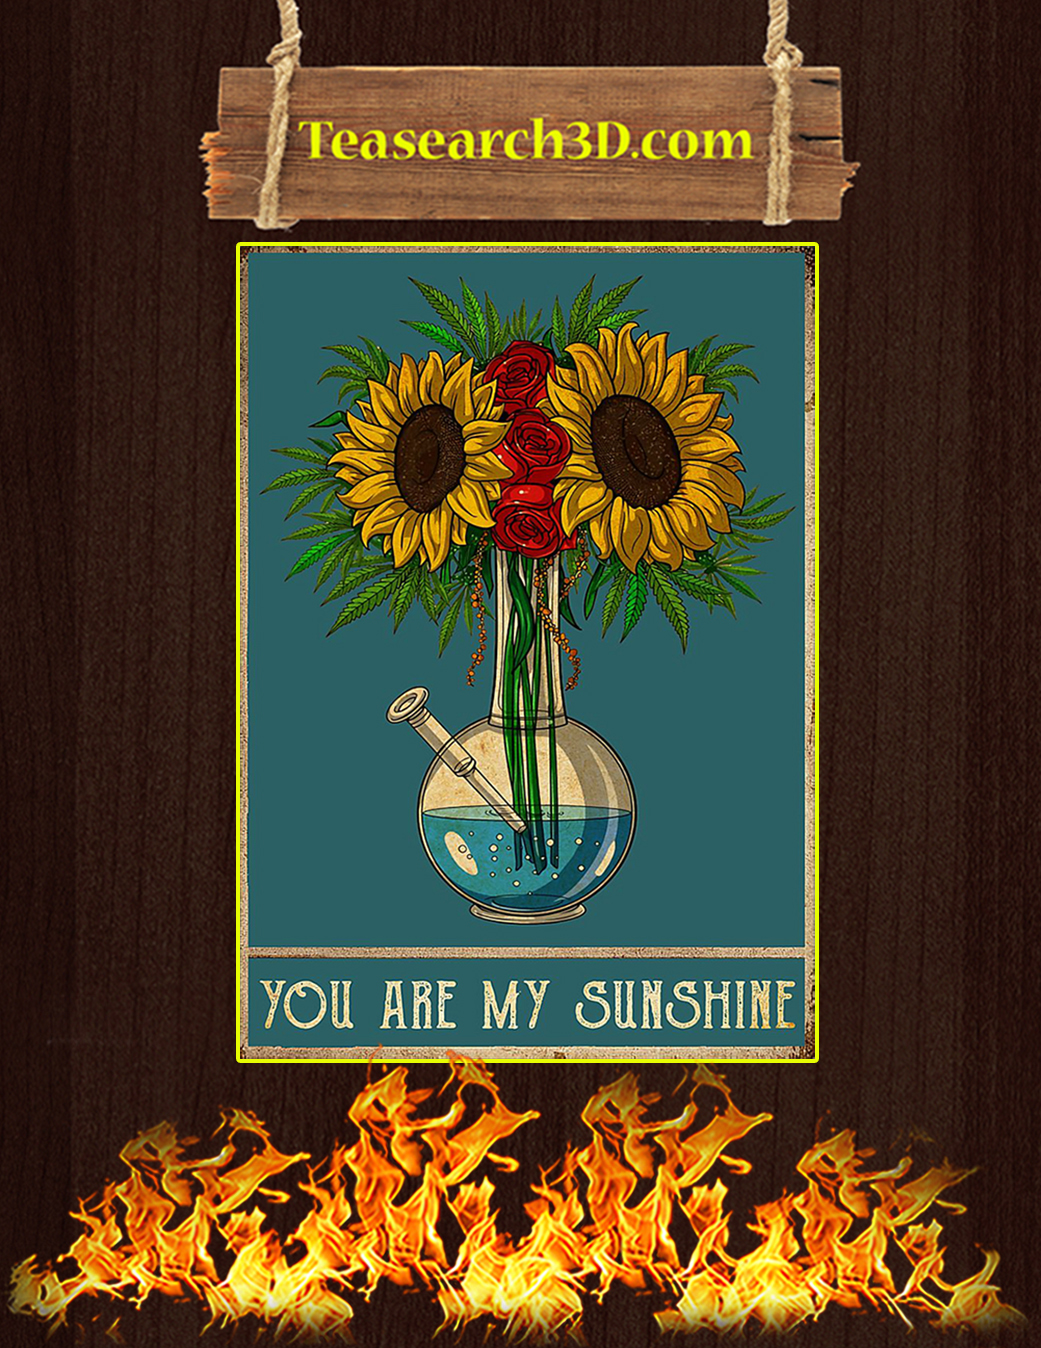 Sunflower rose weed you are my sunshine poster A1